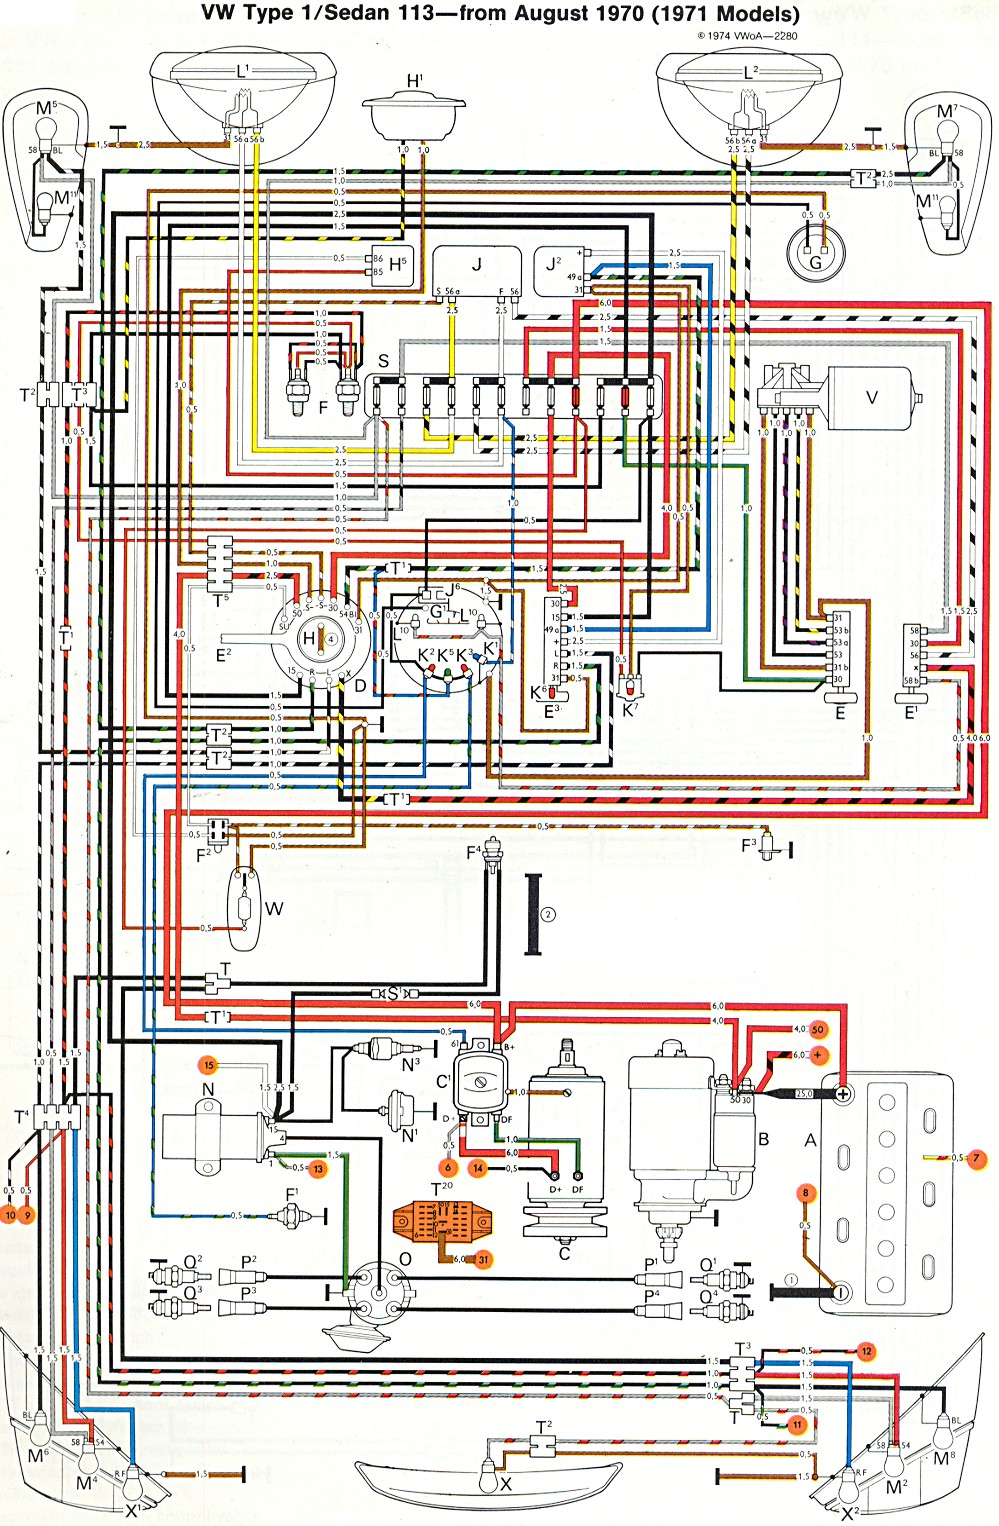 73 vw bus wiring diagrams  | 999 x 1526